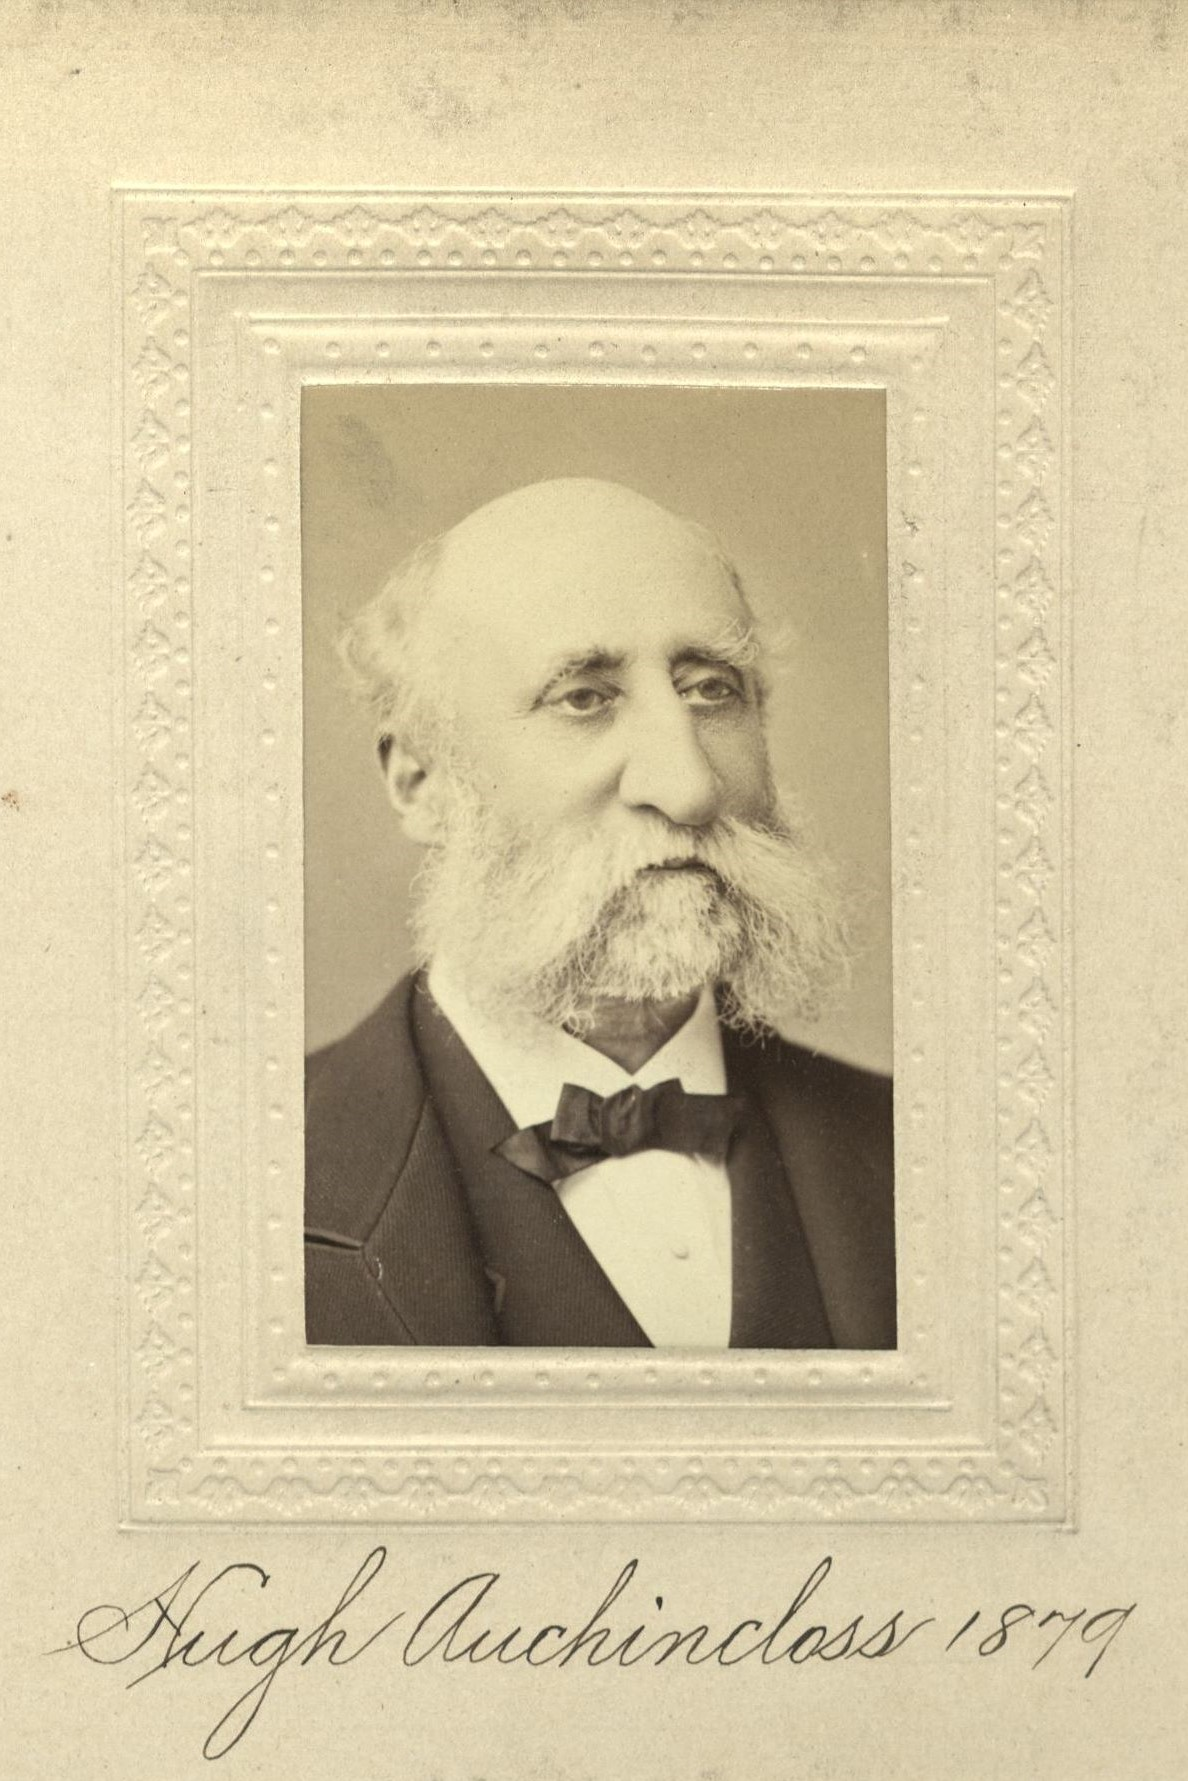 Member portrait of Hugh Auchincloss